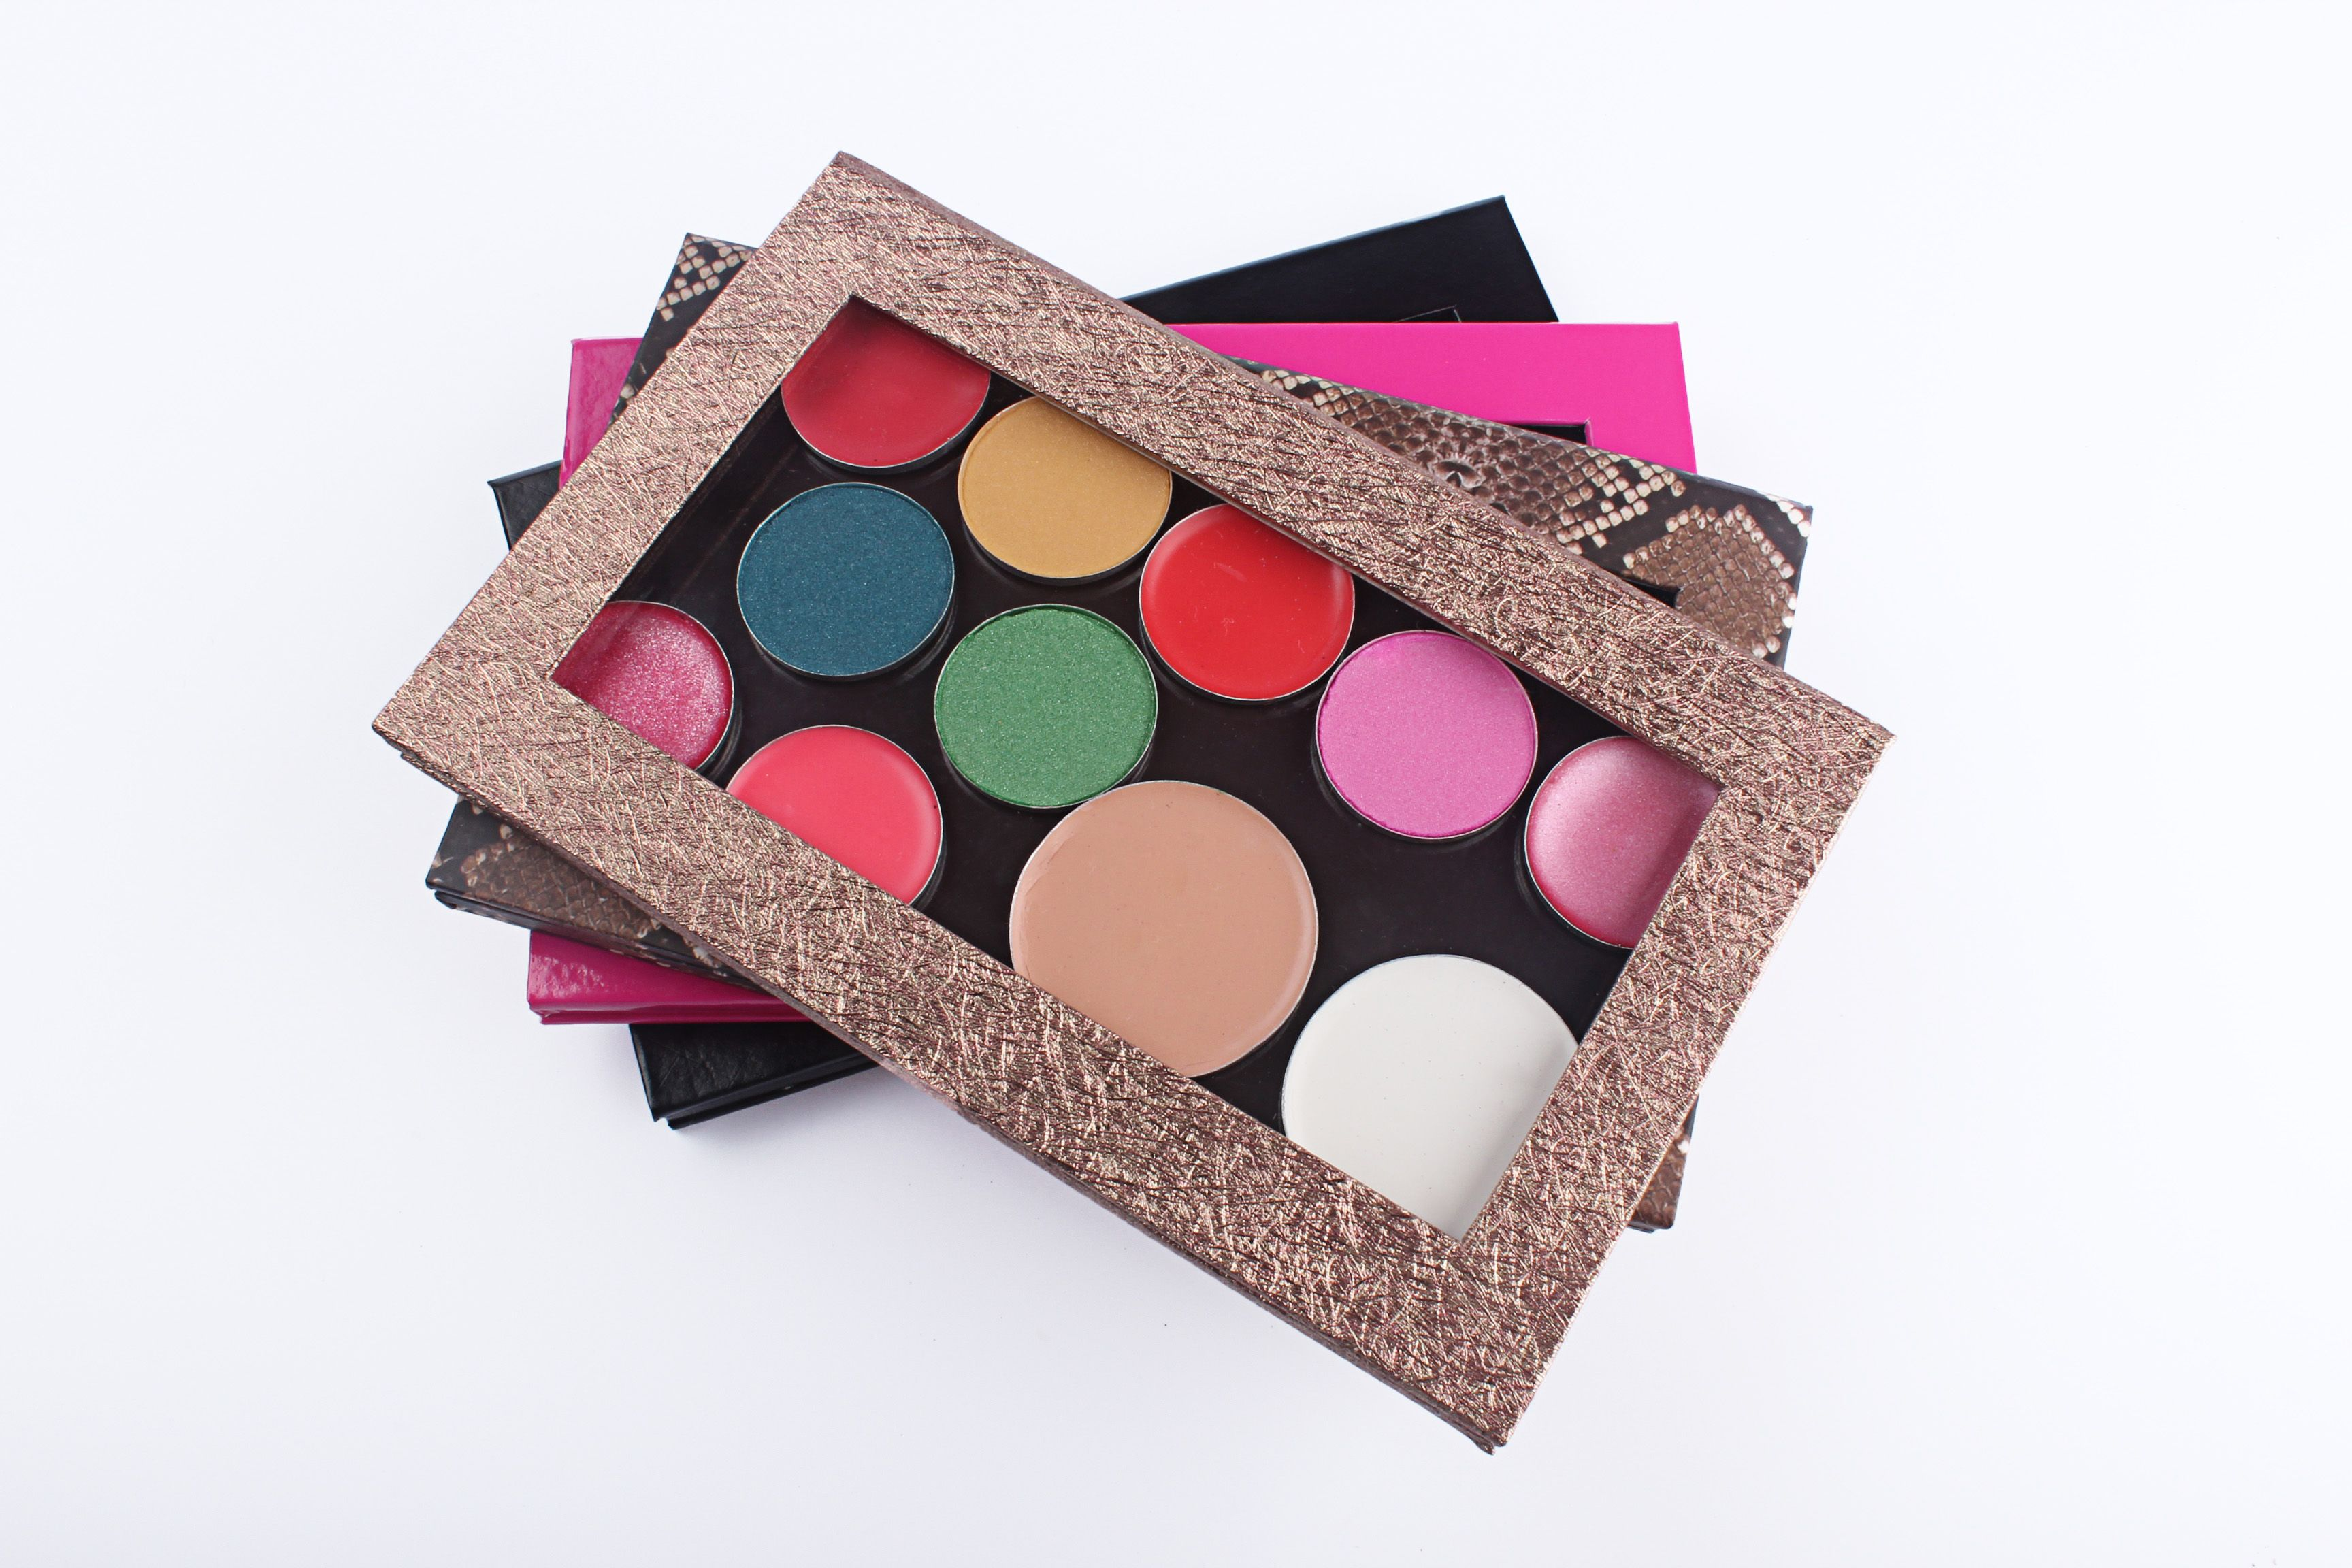 empty makeup palette which can fit in different